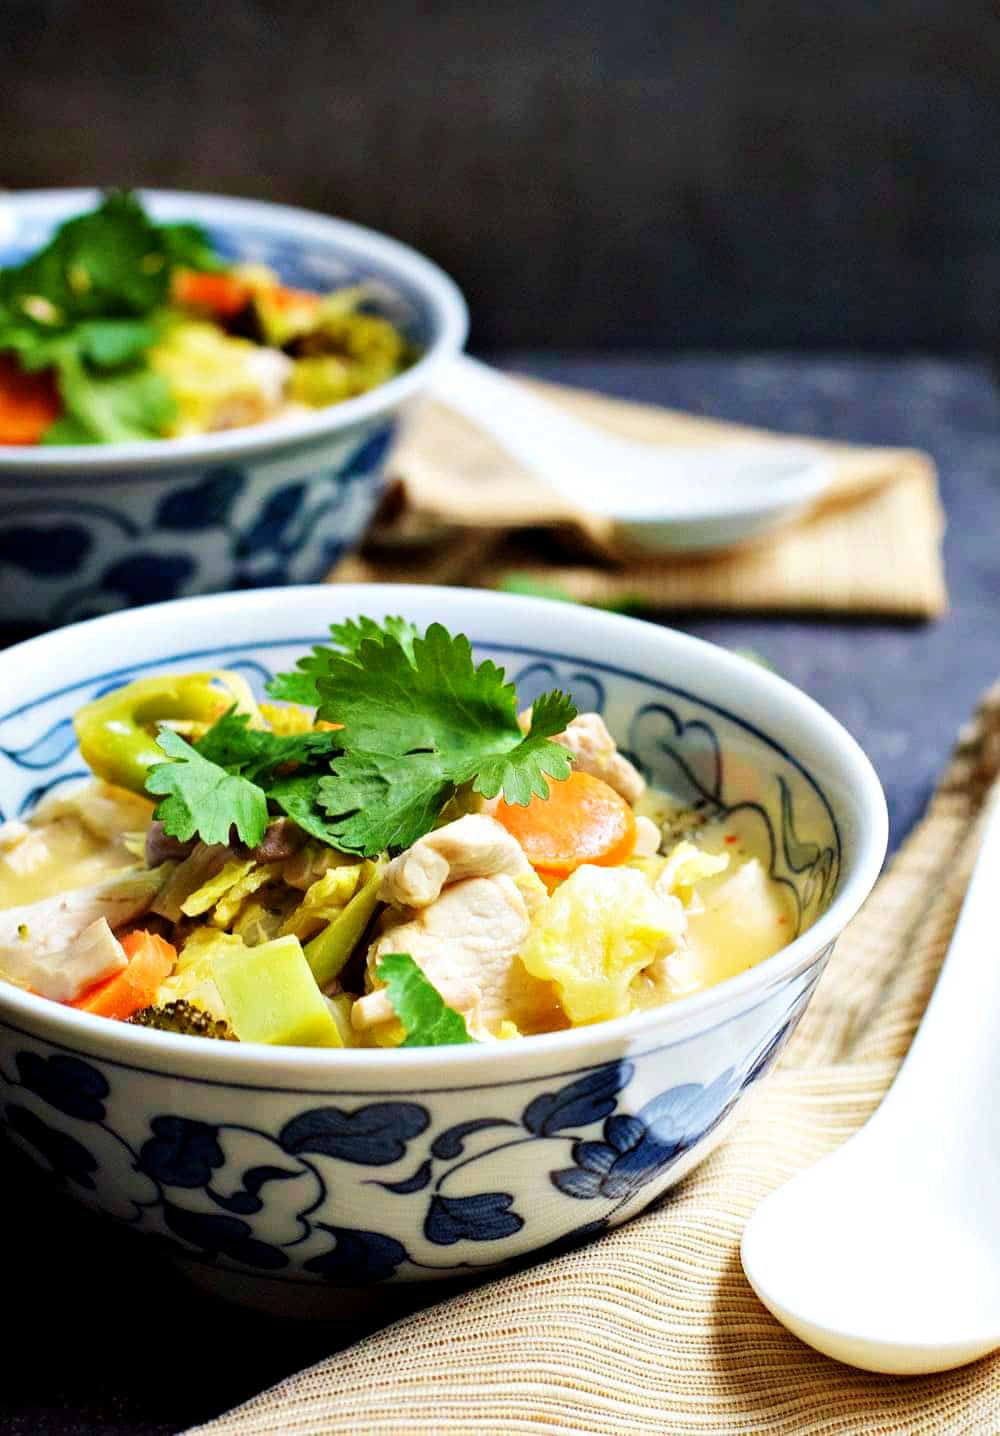 Tom Kha Gai Thai Coconut Chicken Soup served in blue and white bowls